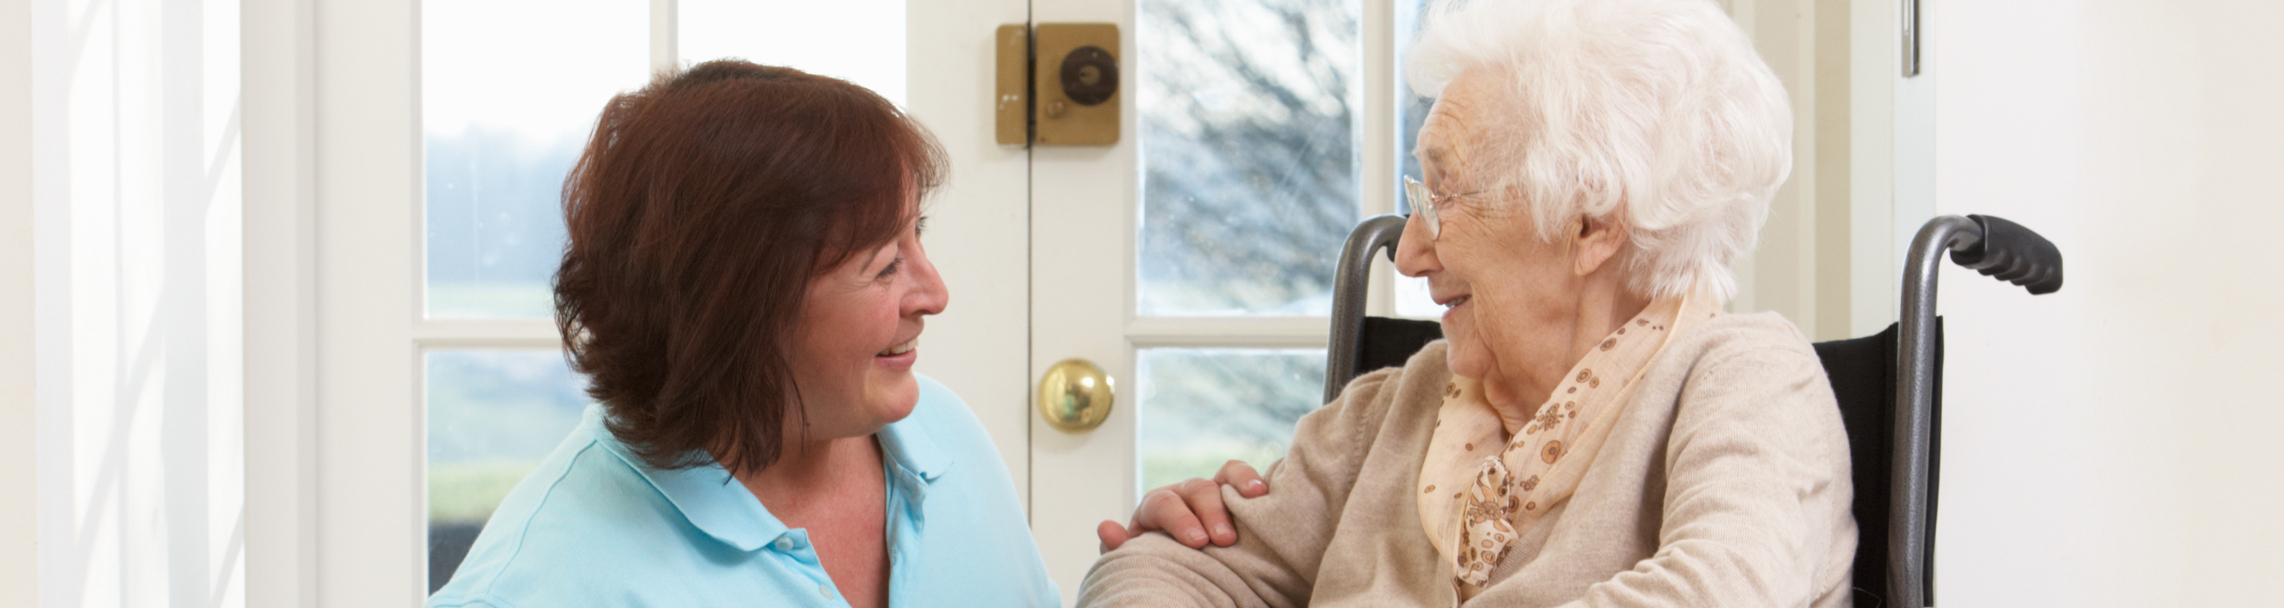 Elderly woman in a wheelchair speaking with a caregiver